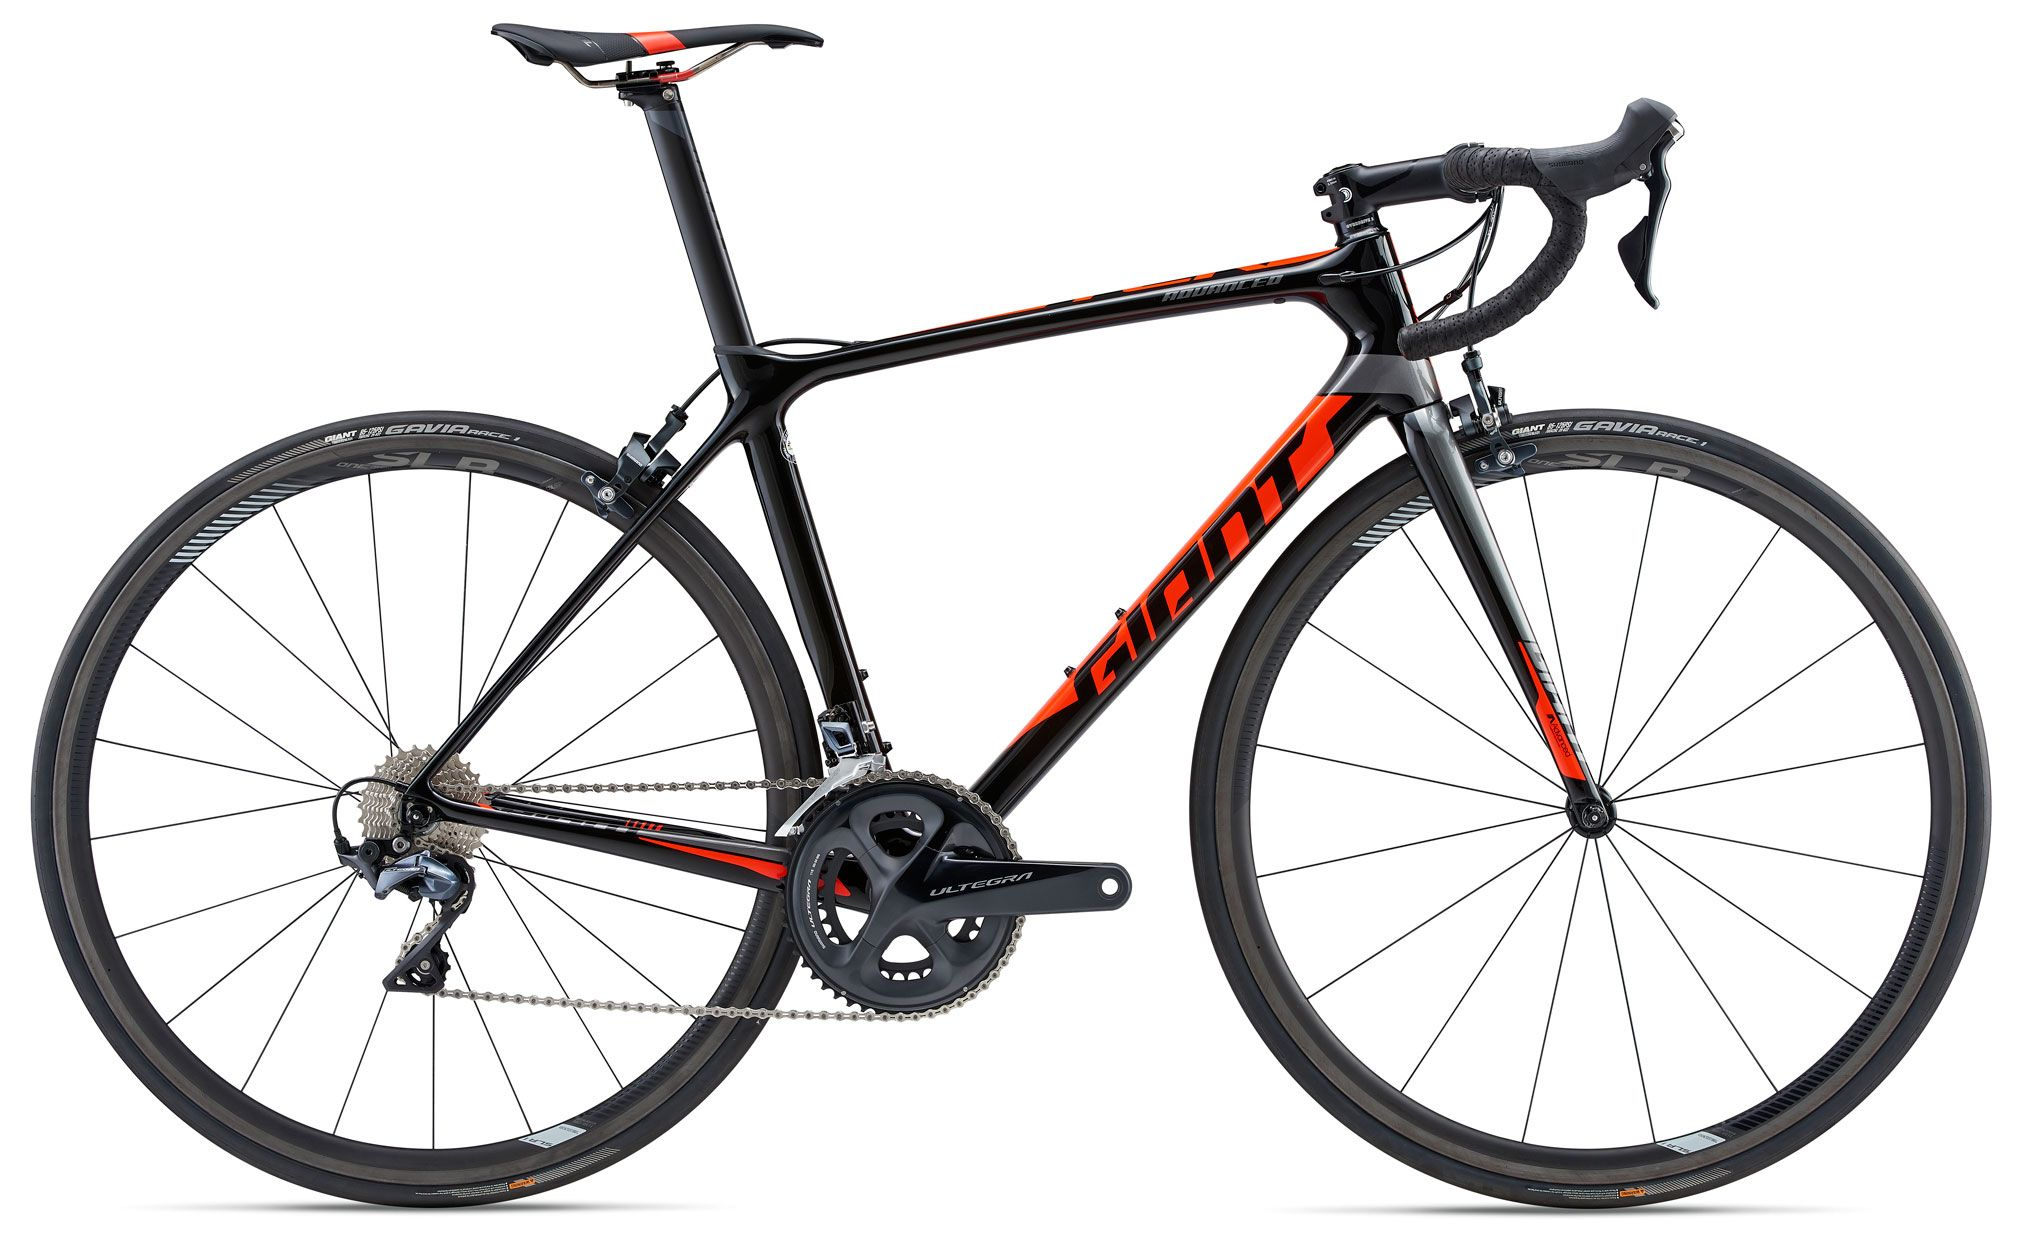 Велосипед Giant TCR Advanced Pro 1 2018 велосипед giant trinity advanced pro 0 2016